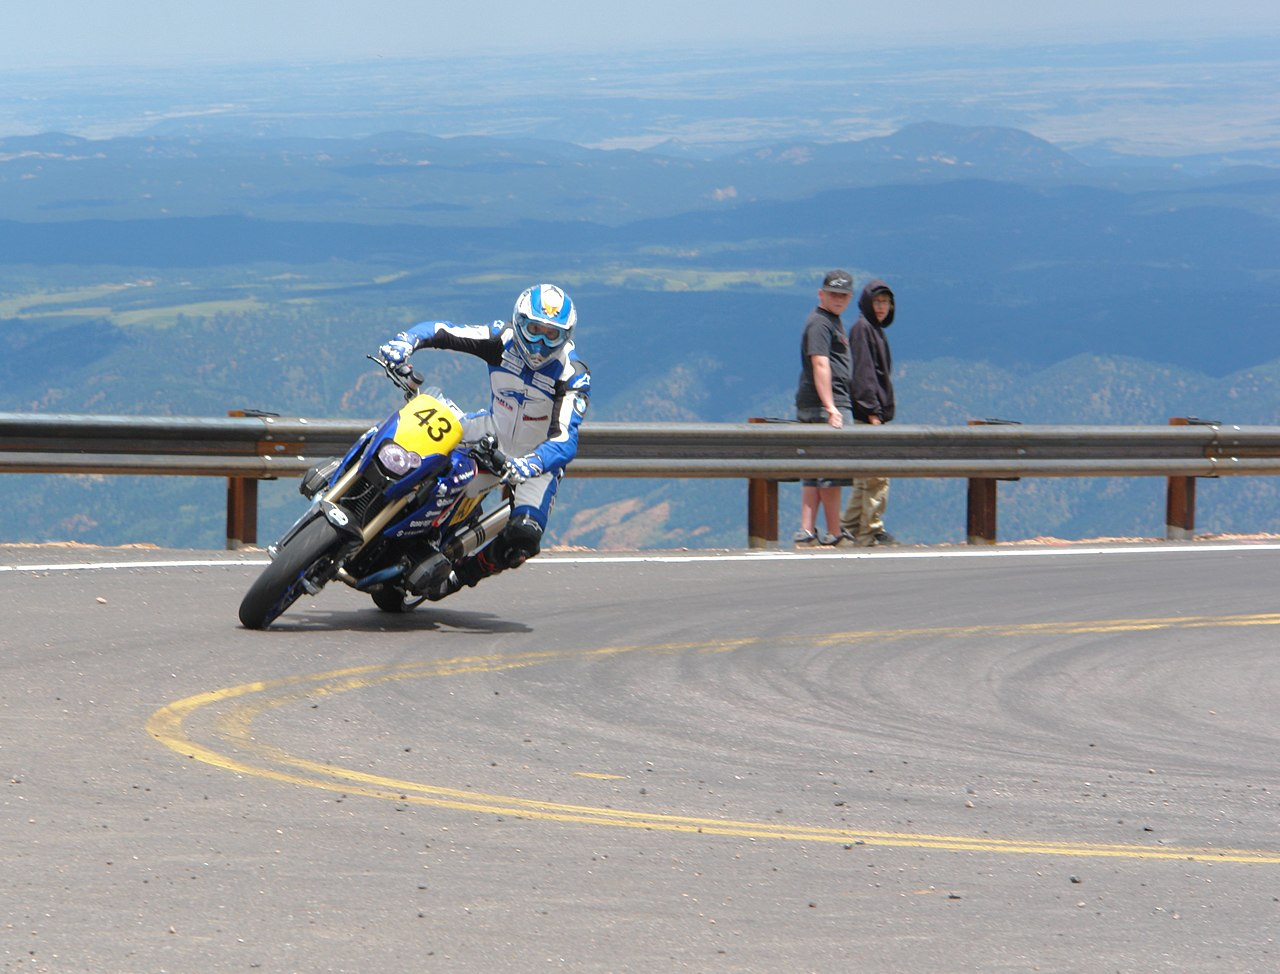 1280px-Motorcycle_Lean_PPIHC